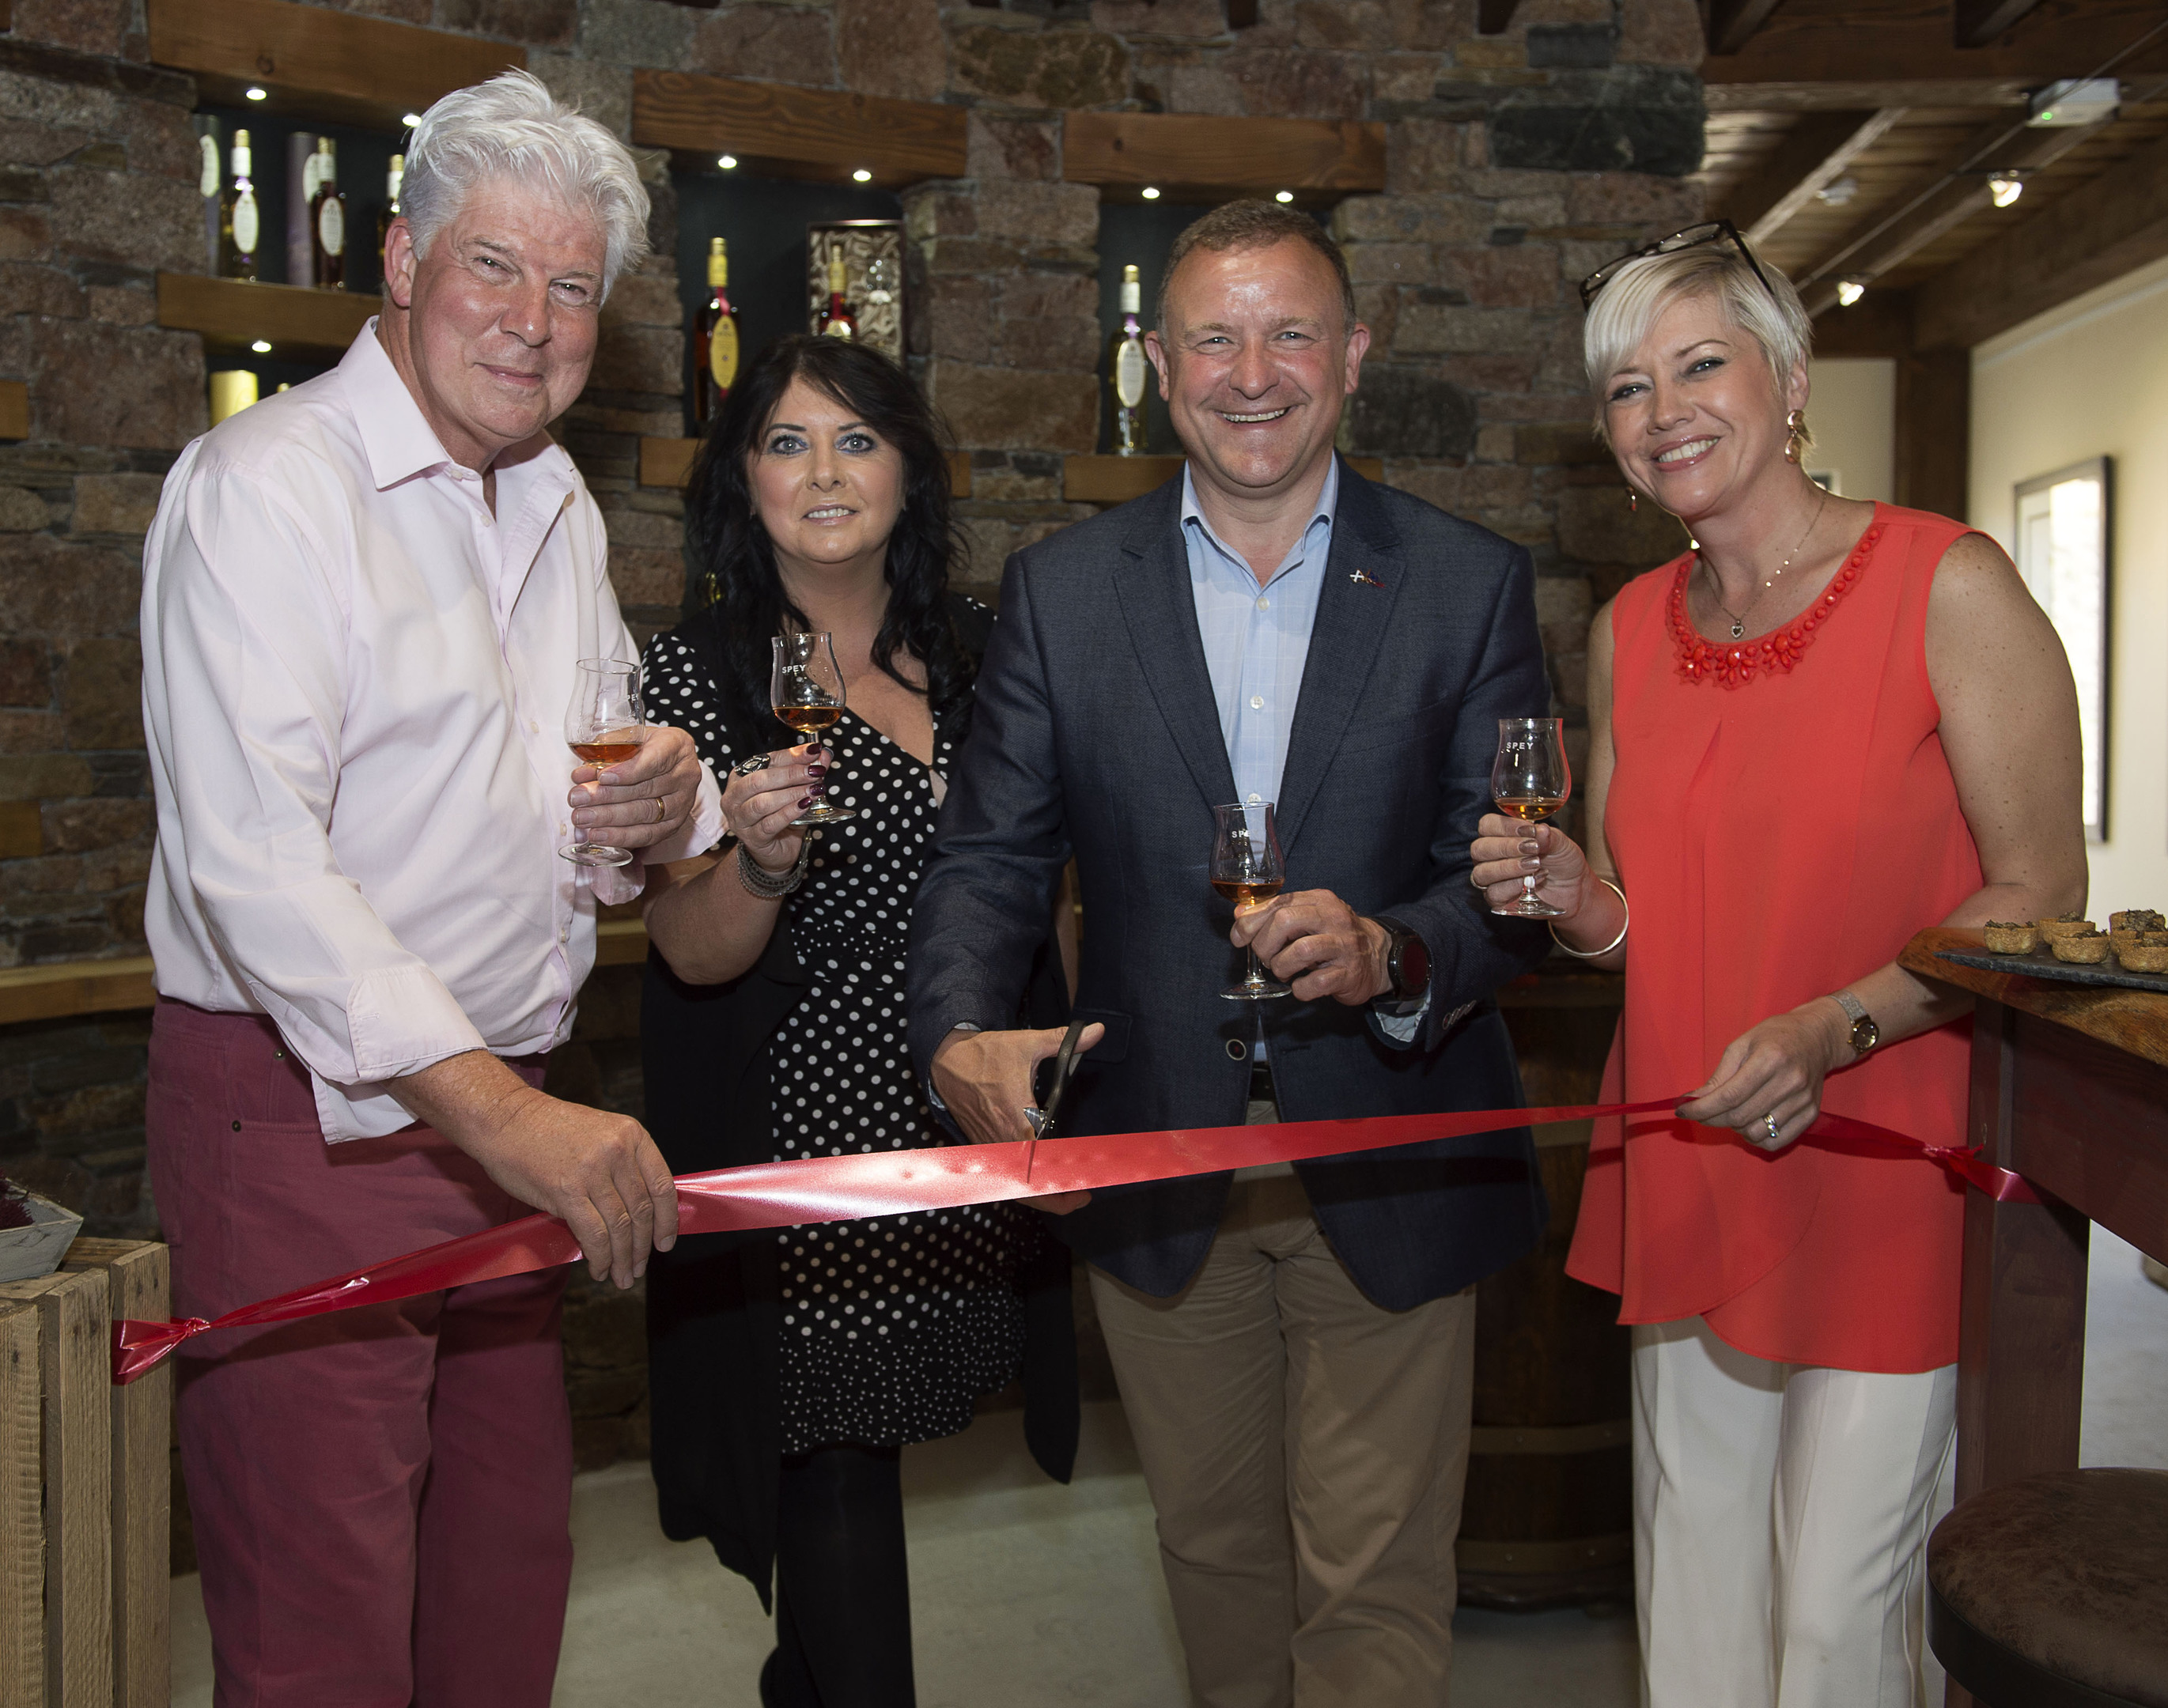 Celebrating the official opening of The Snug are (left to right) John Harvey McDonough, Patricia Dillon, local MP Drew Hendry and Joanna McDonough. Picture by Trevor Martin